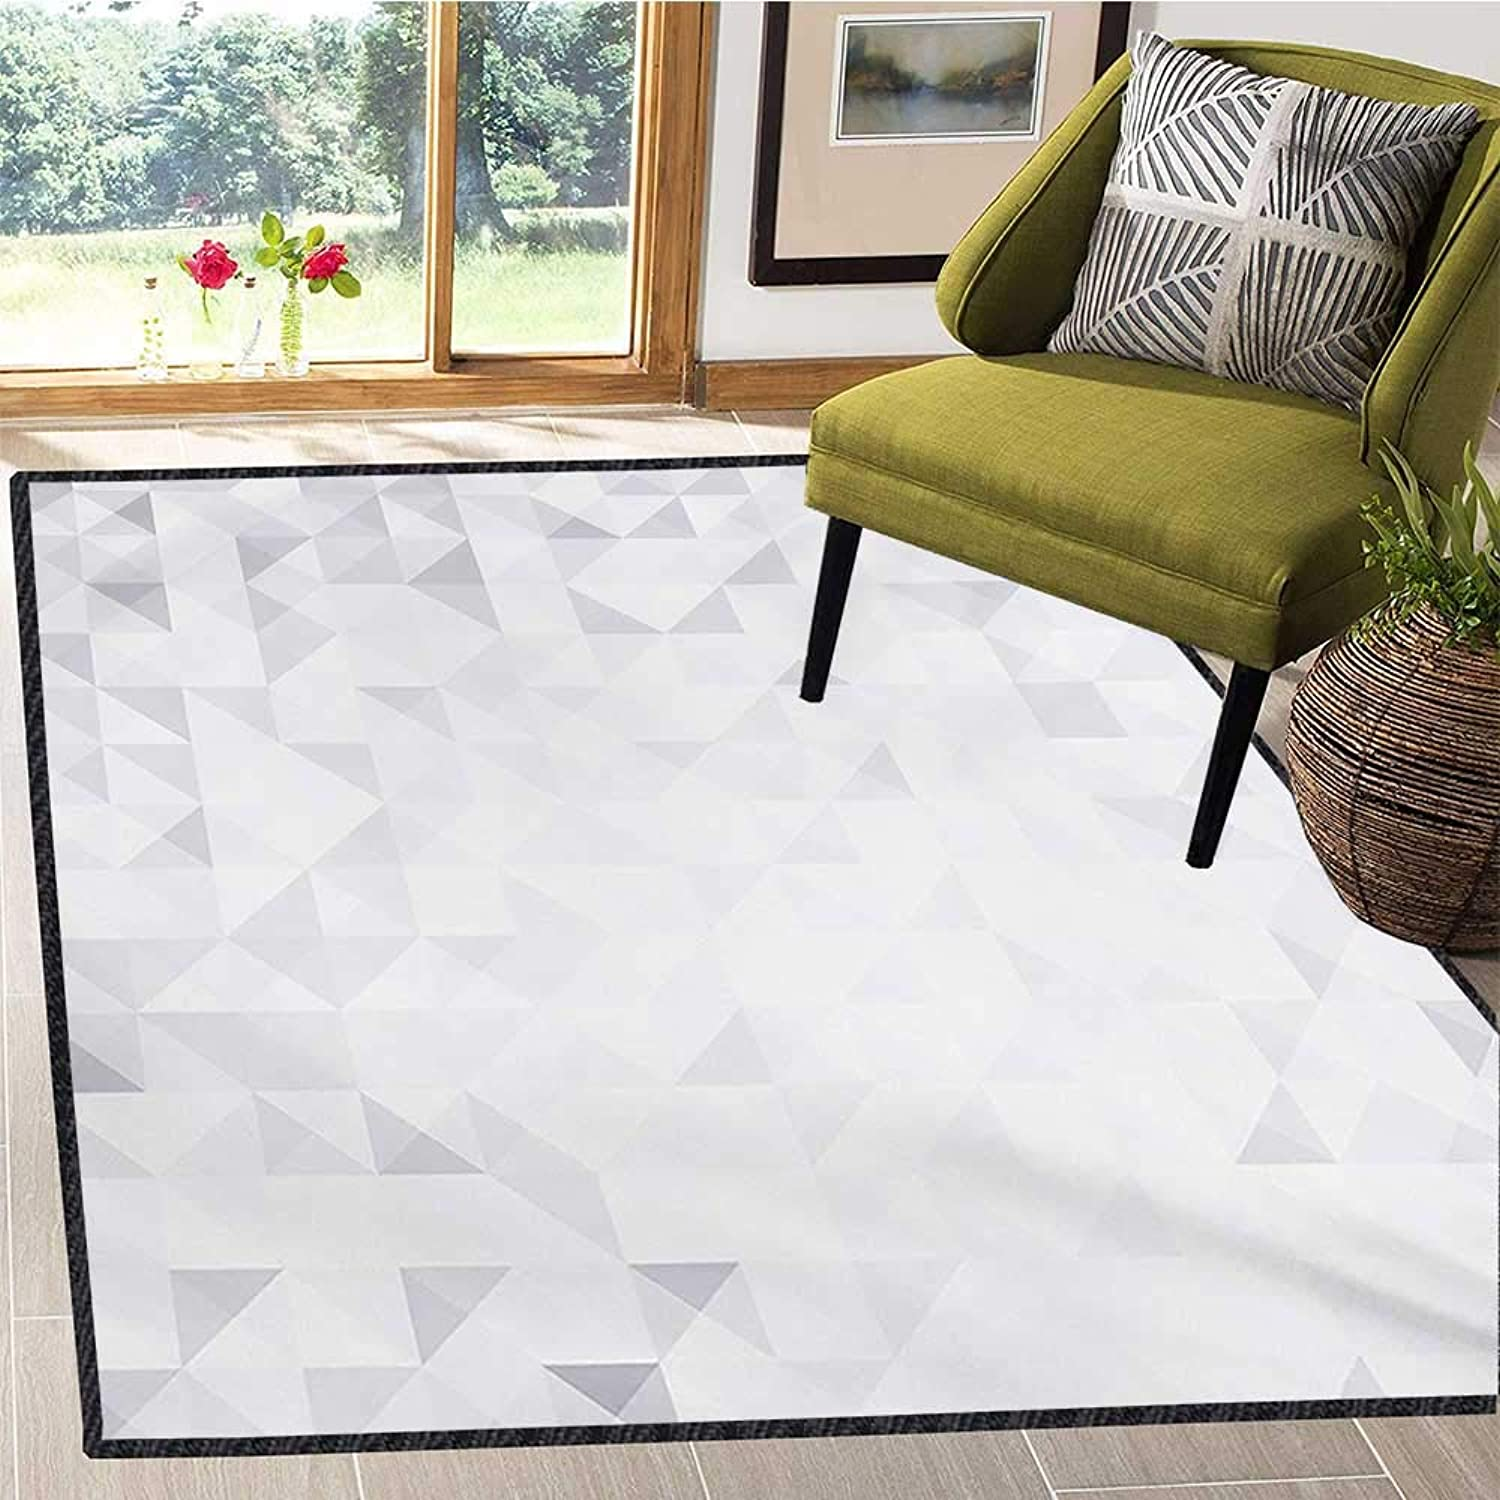 Grey and White, Door Mats for Inside, Geometric Poly Artsy Triangles Abstract Pattern in Many Shades of Grey, Door Mat Indoors Bathroom Mats Non Slip 6x8 Ft Pale Grey White